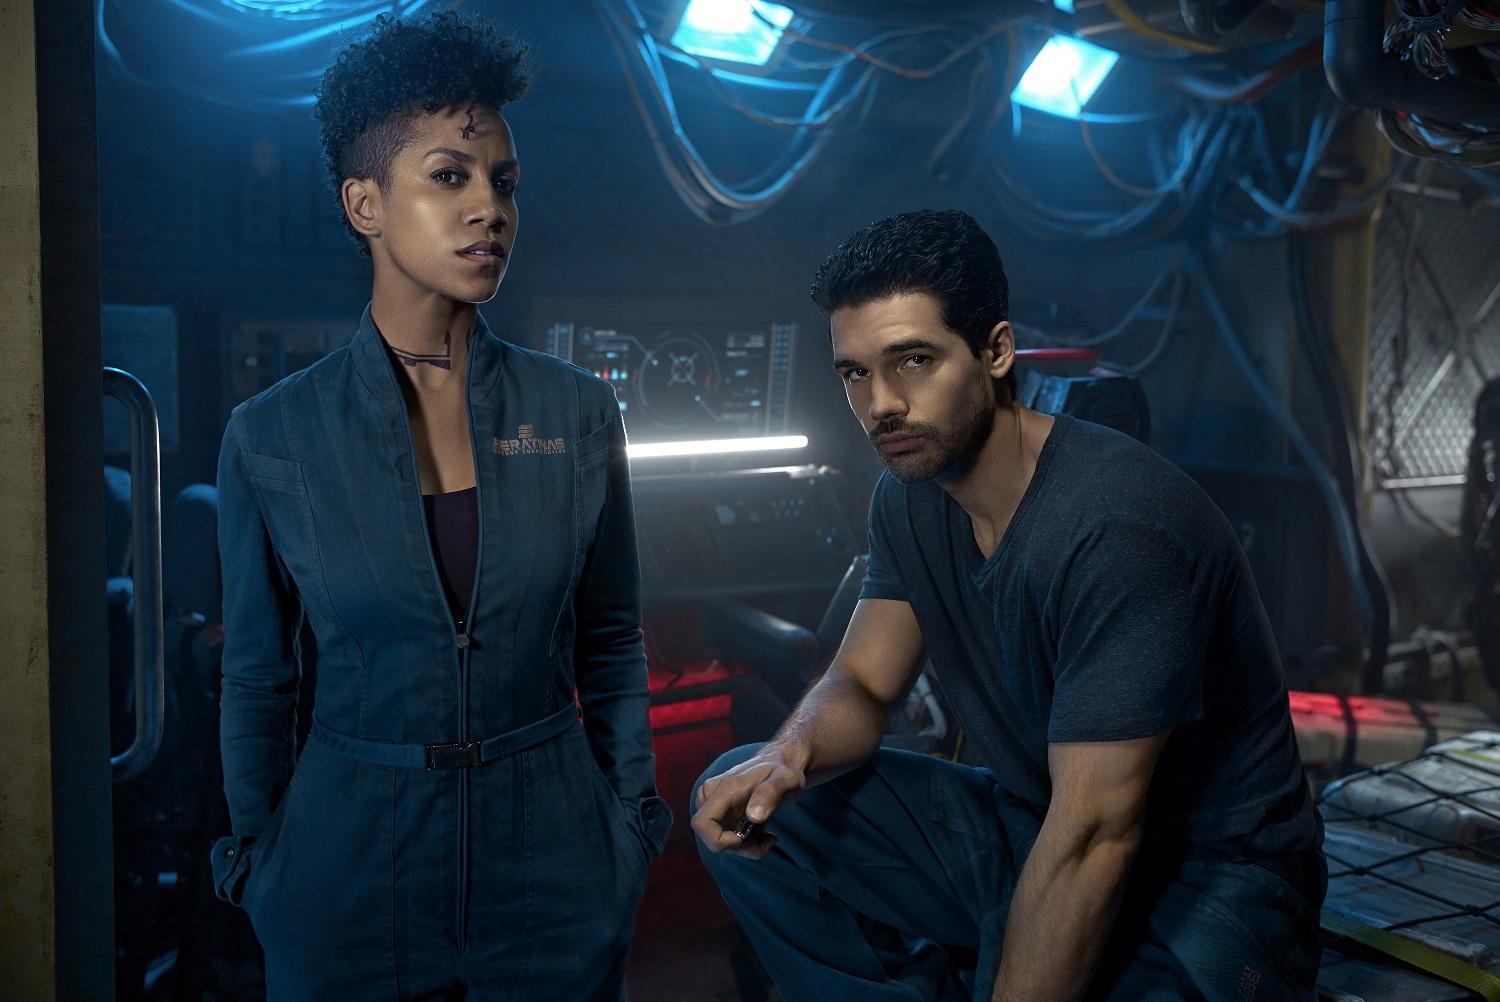 Dominique Tipper as Naomi Nagata, Steven Strait as James Holden of The Expanse